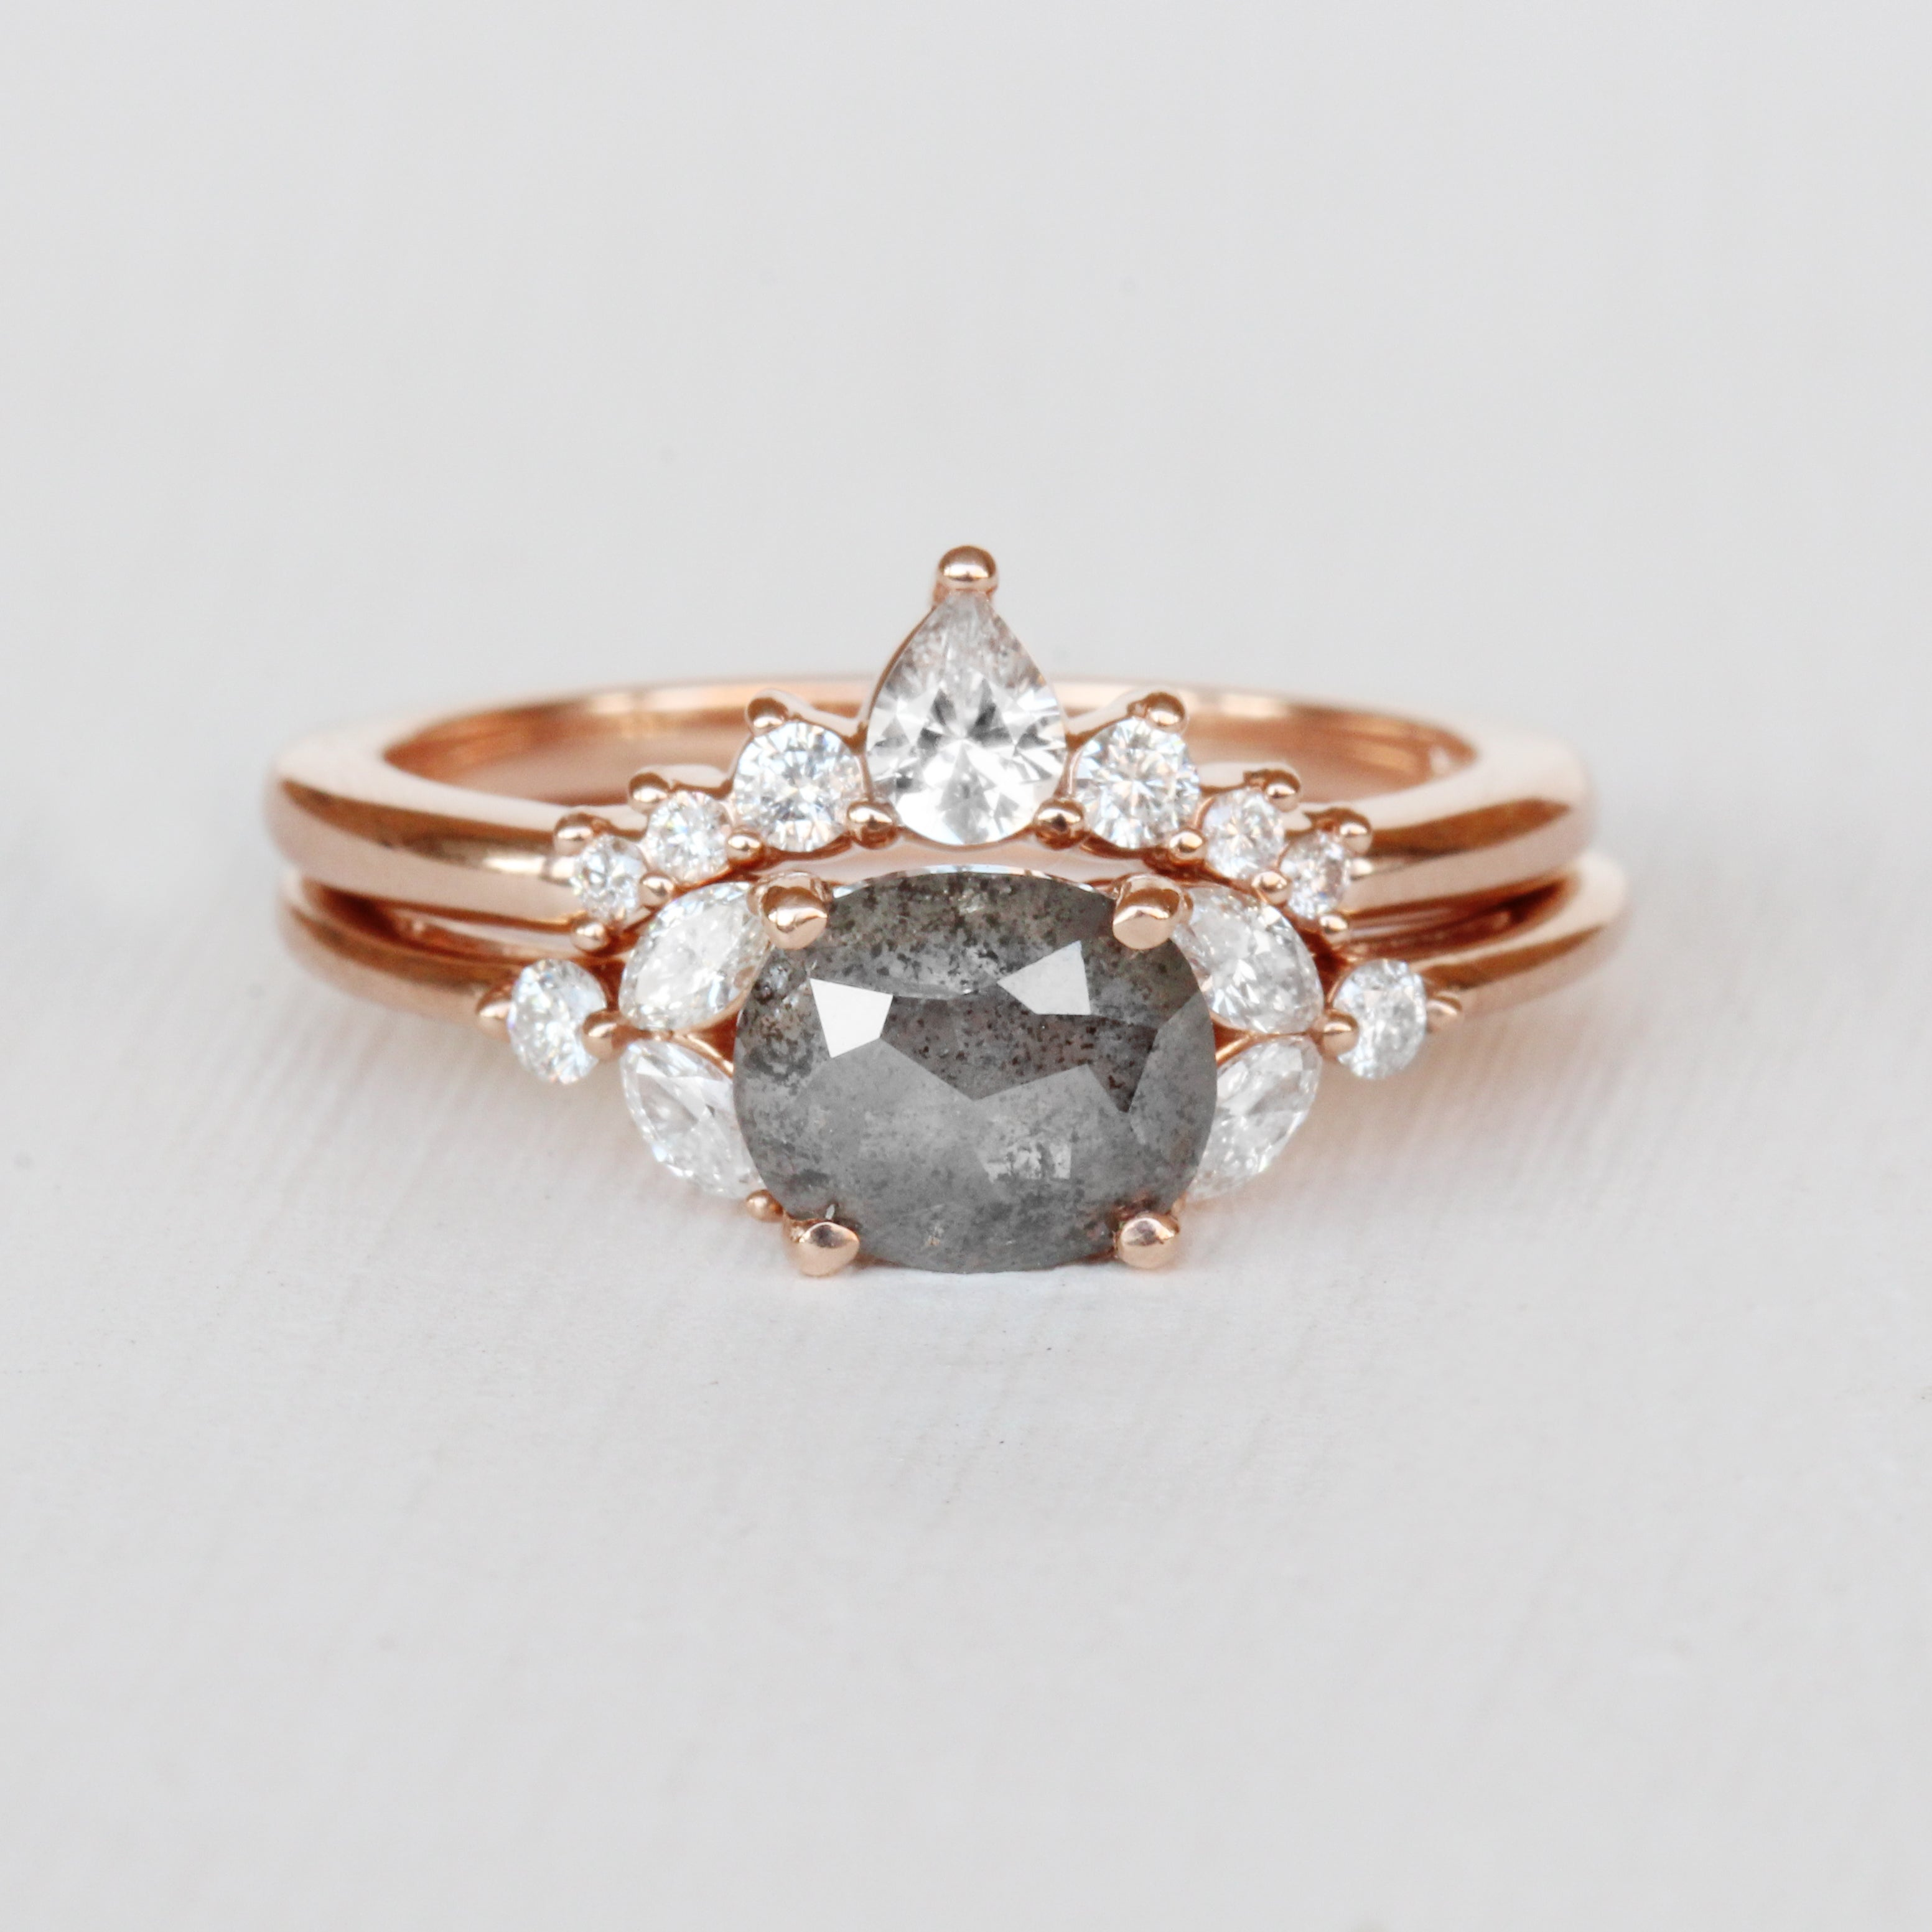 Moira - Contoured Diamond Wedding Stacking Band - made to order - Celestial Diamonds ® by Midwinter Co.